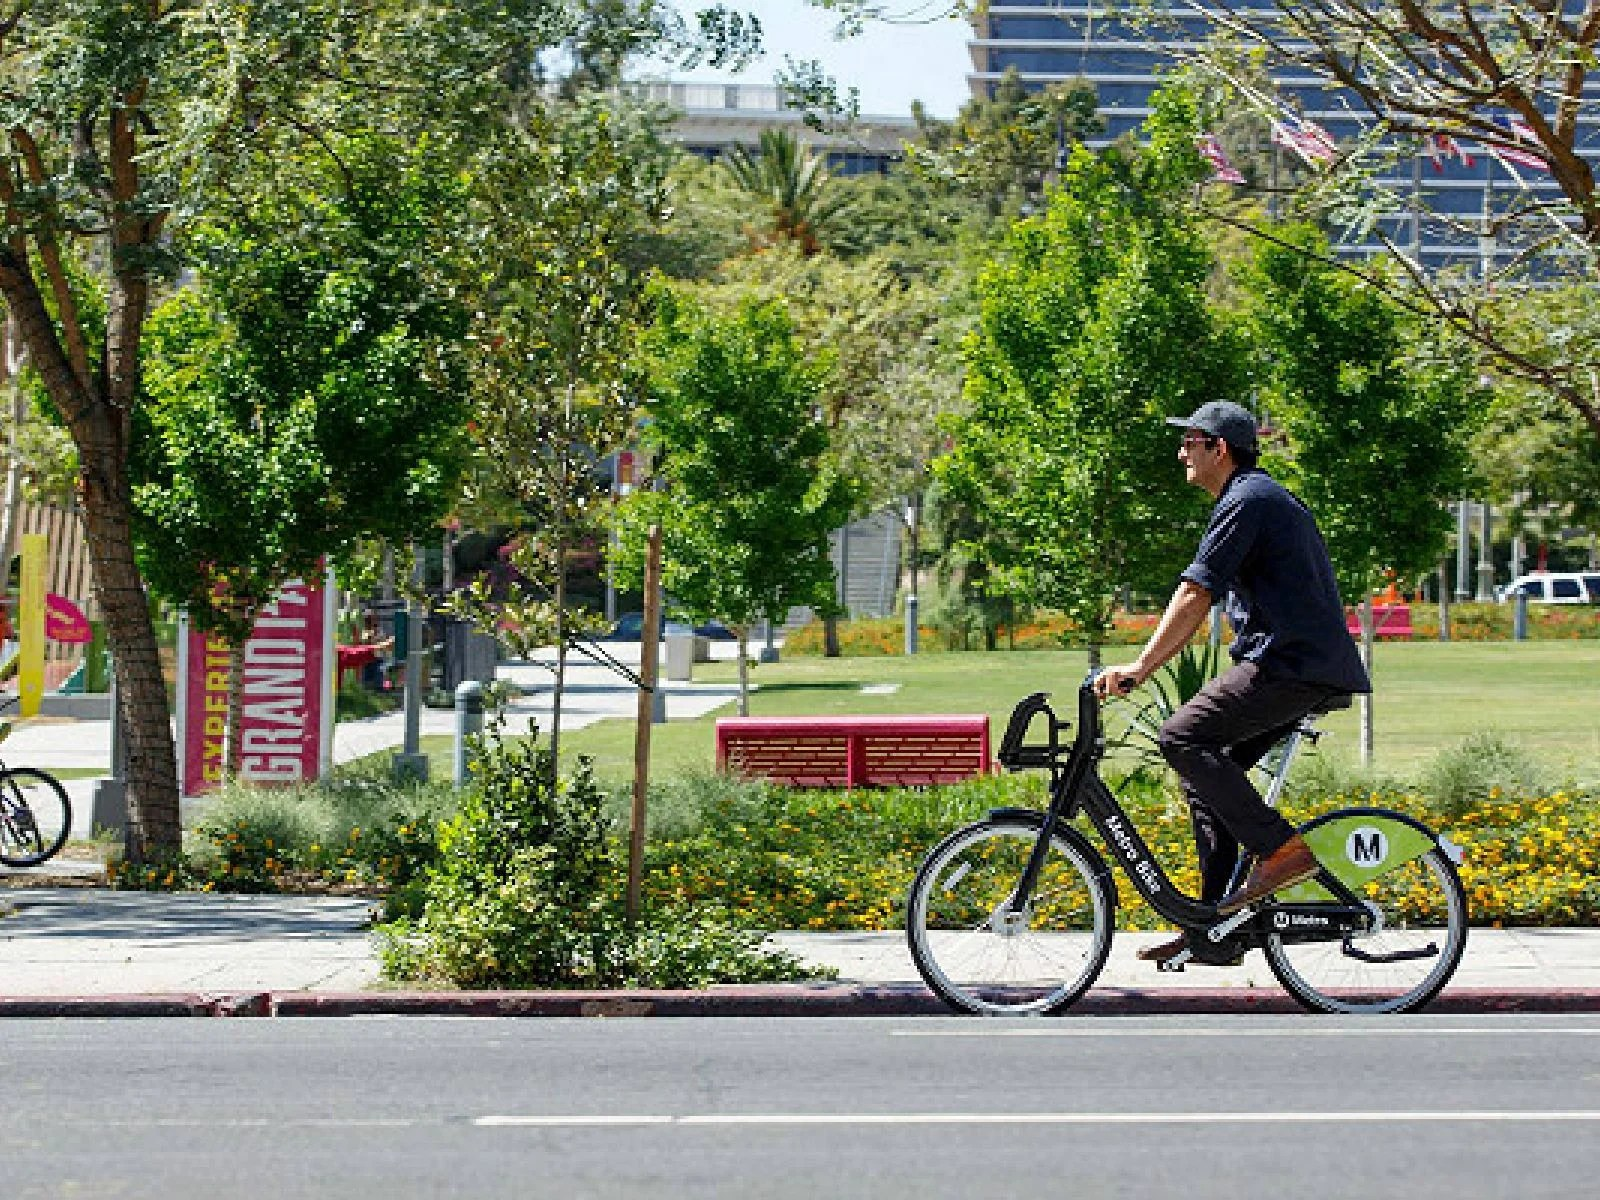 Arte Johnson On Bike Descubre Los Ángeles En Bicicleta Metro Bike Share En El Centro